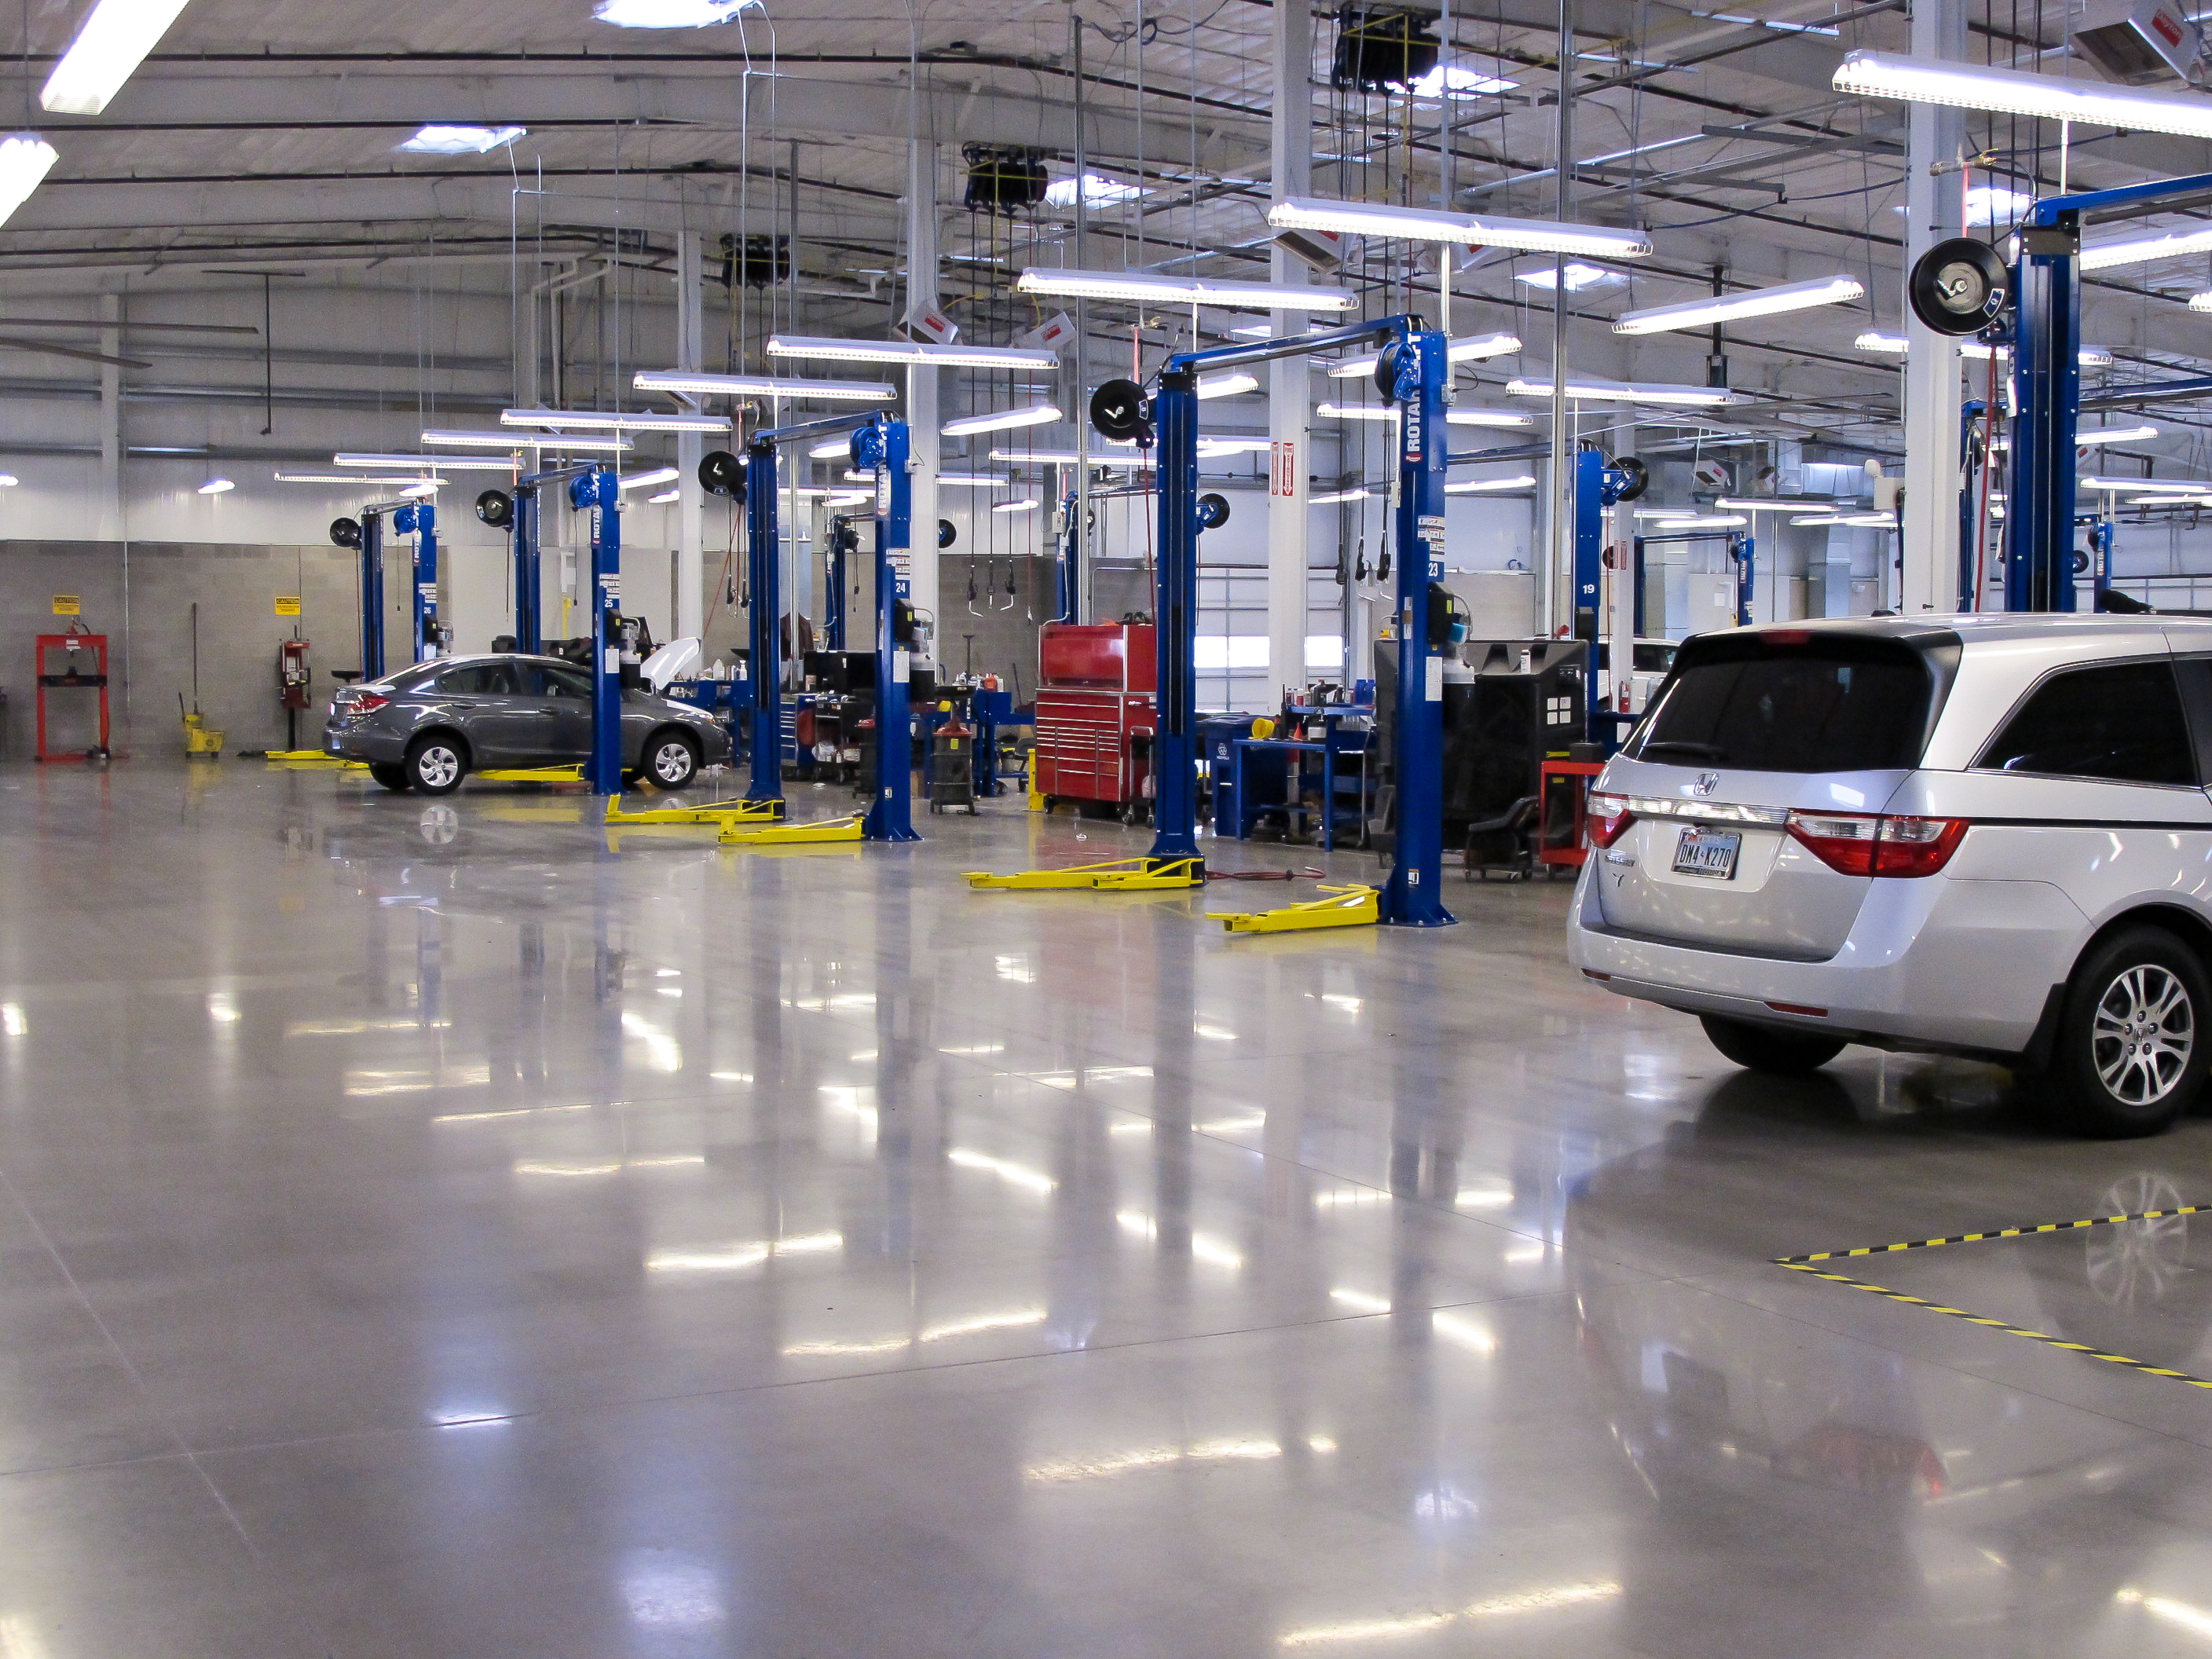 First texas honda dealership renovates with micro toppings for Polished concrete maintenance